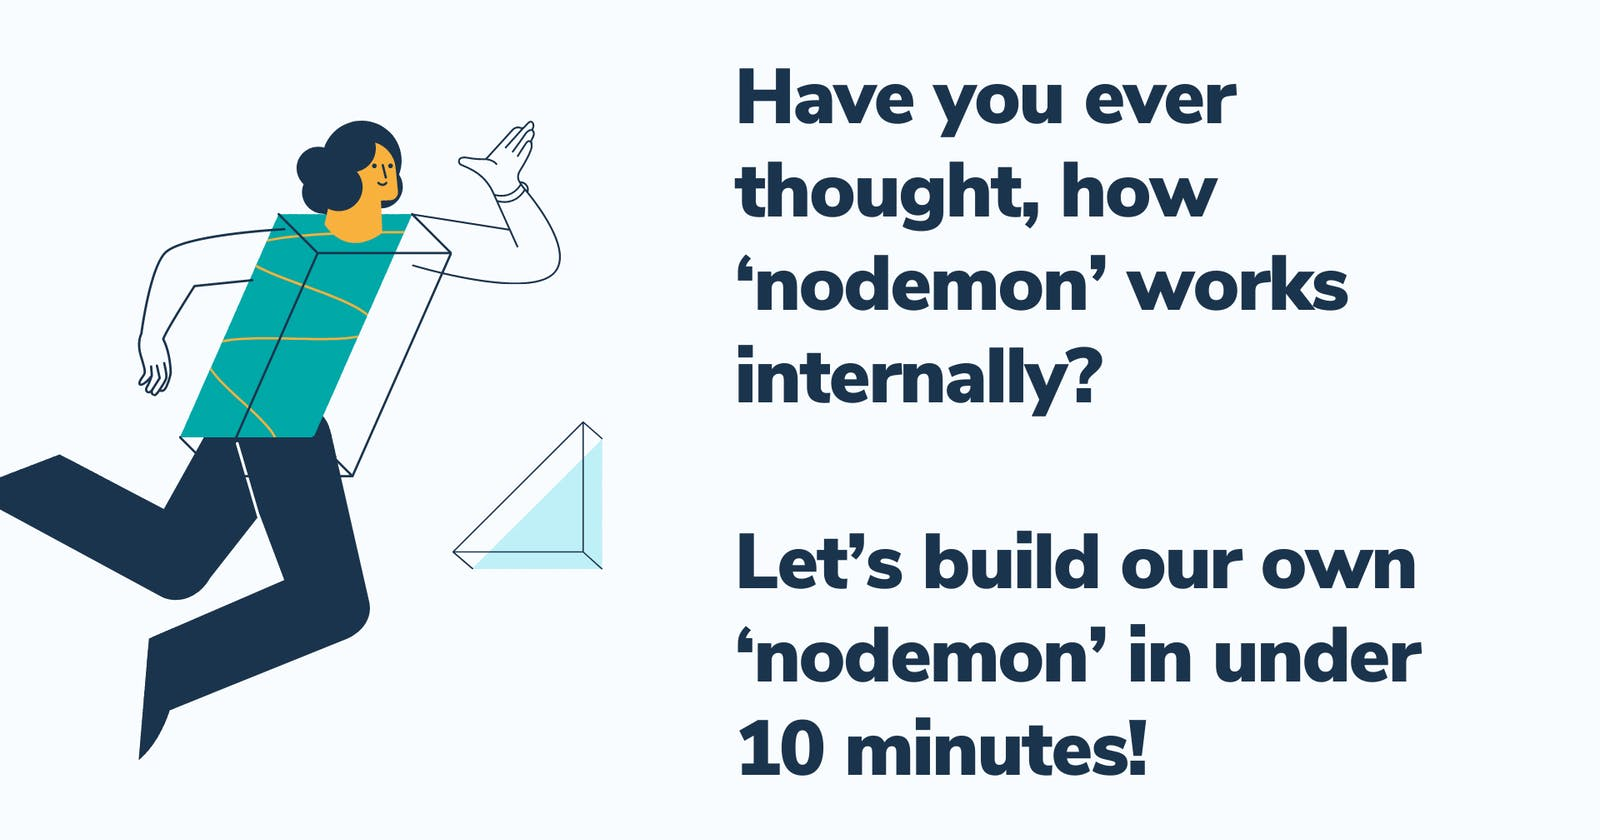 Have you ever thought, how 'nodemon' works internally? Let's build our own 'nodemon' in under 10 minutes!